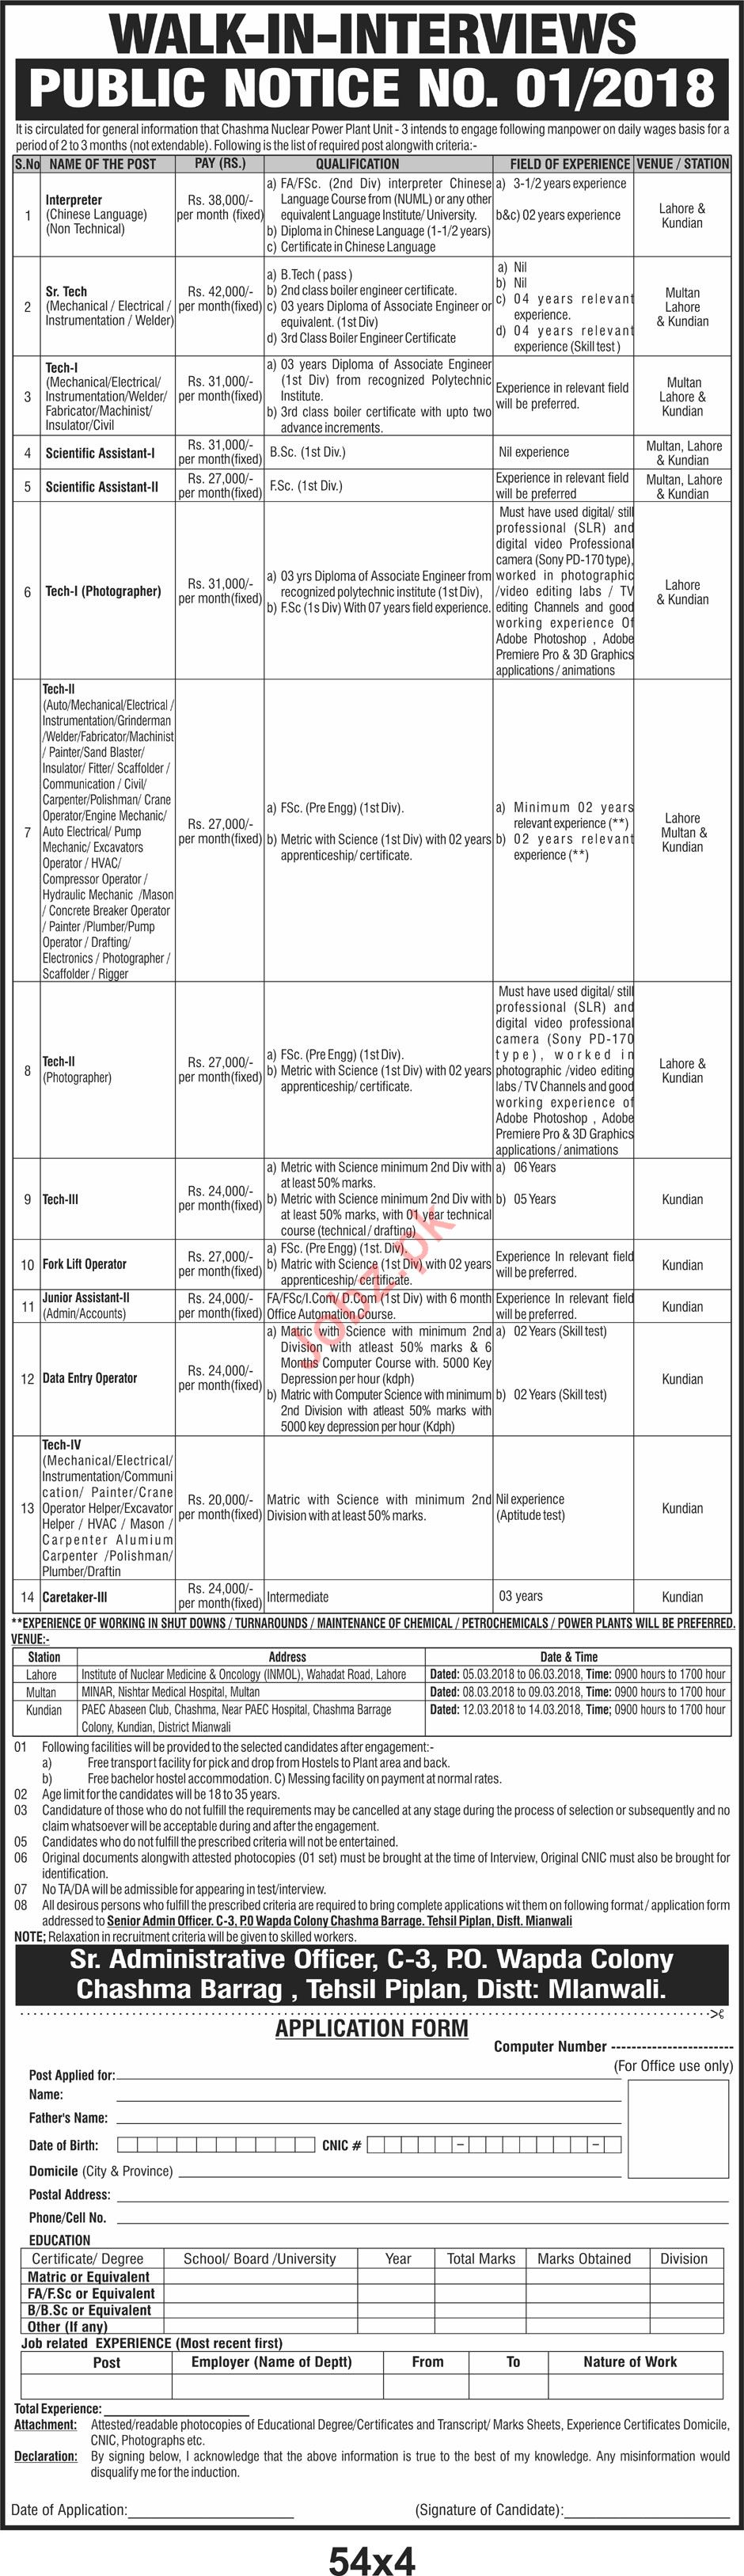 Chashma Nuclear Power Plant Jobs Interview 2018 2019 Job